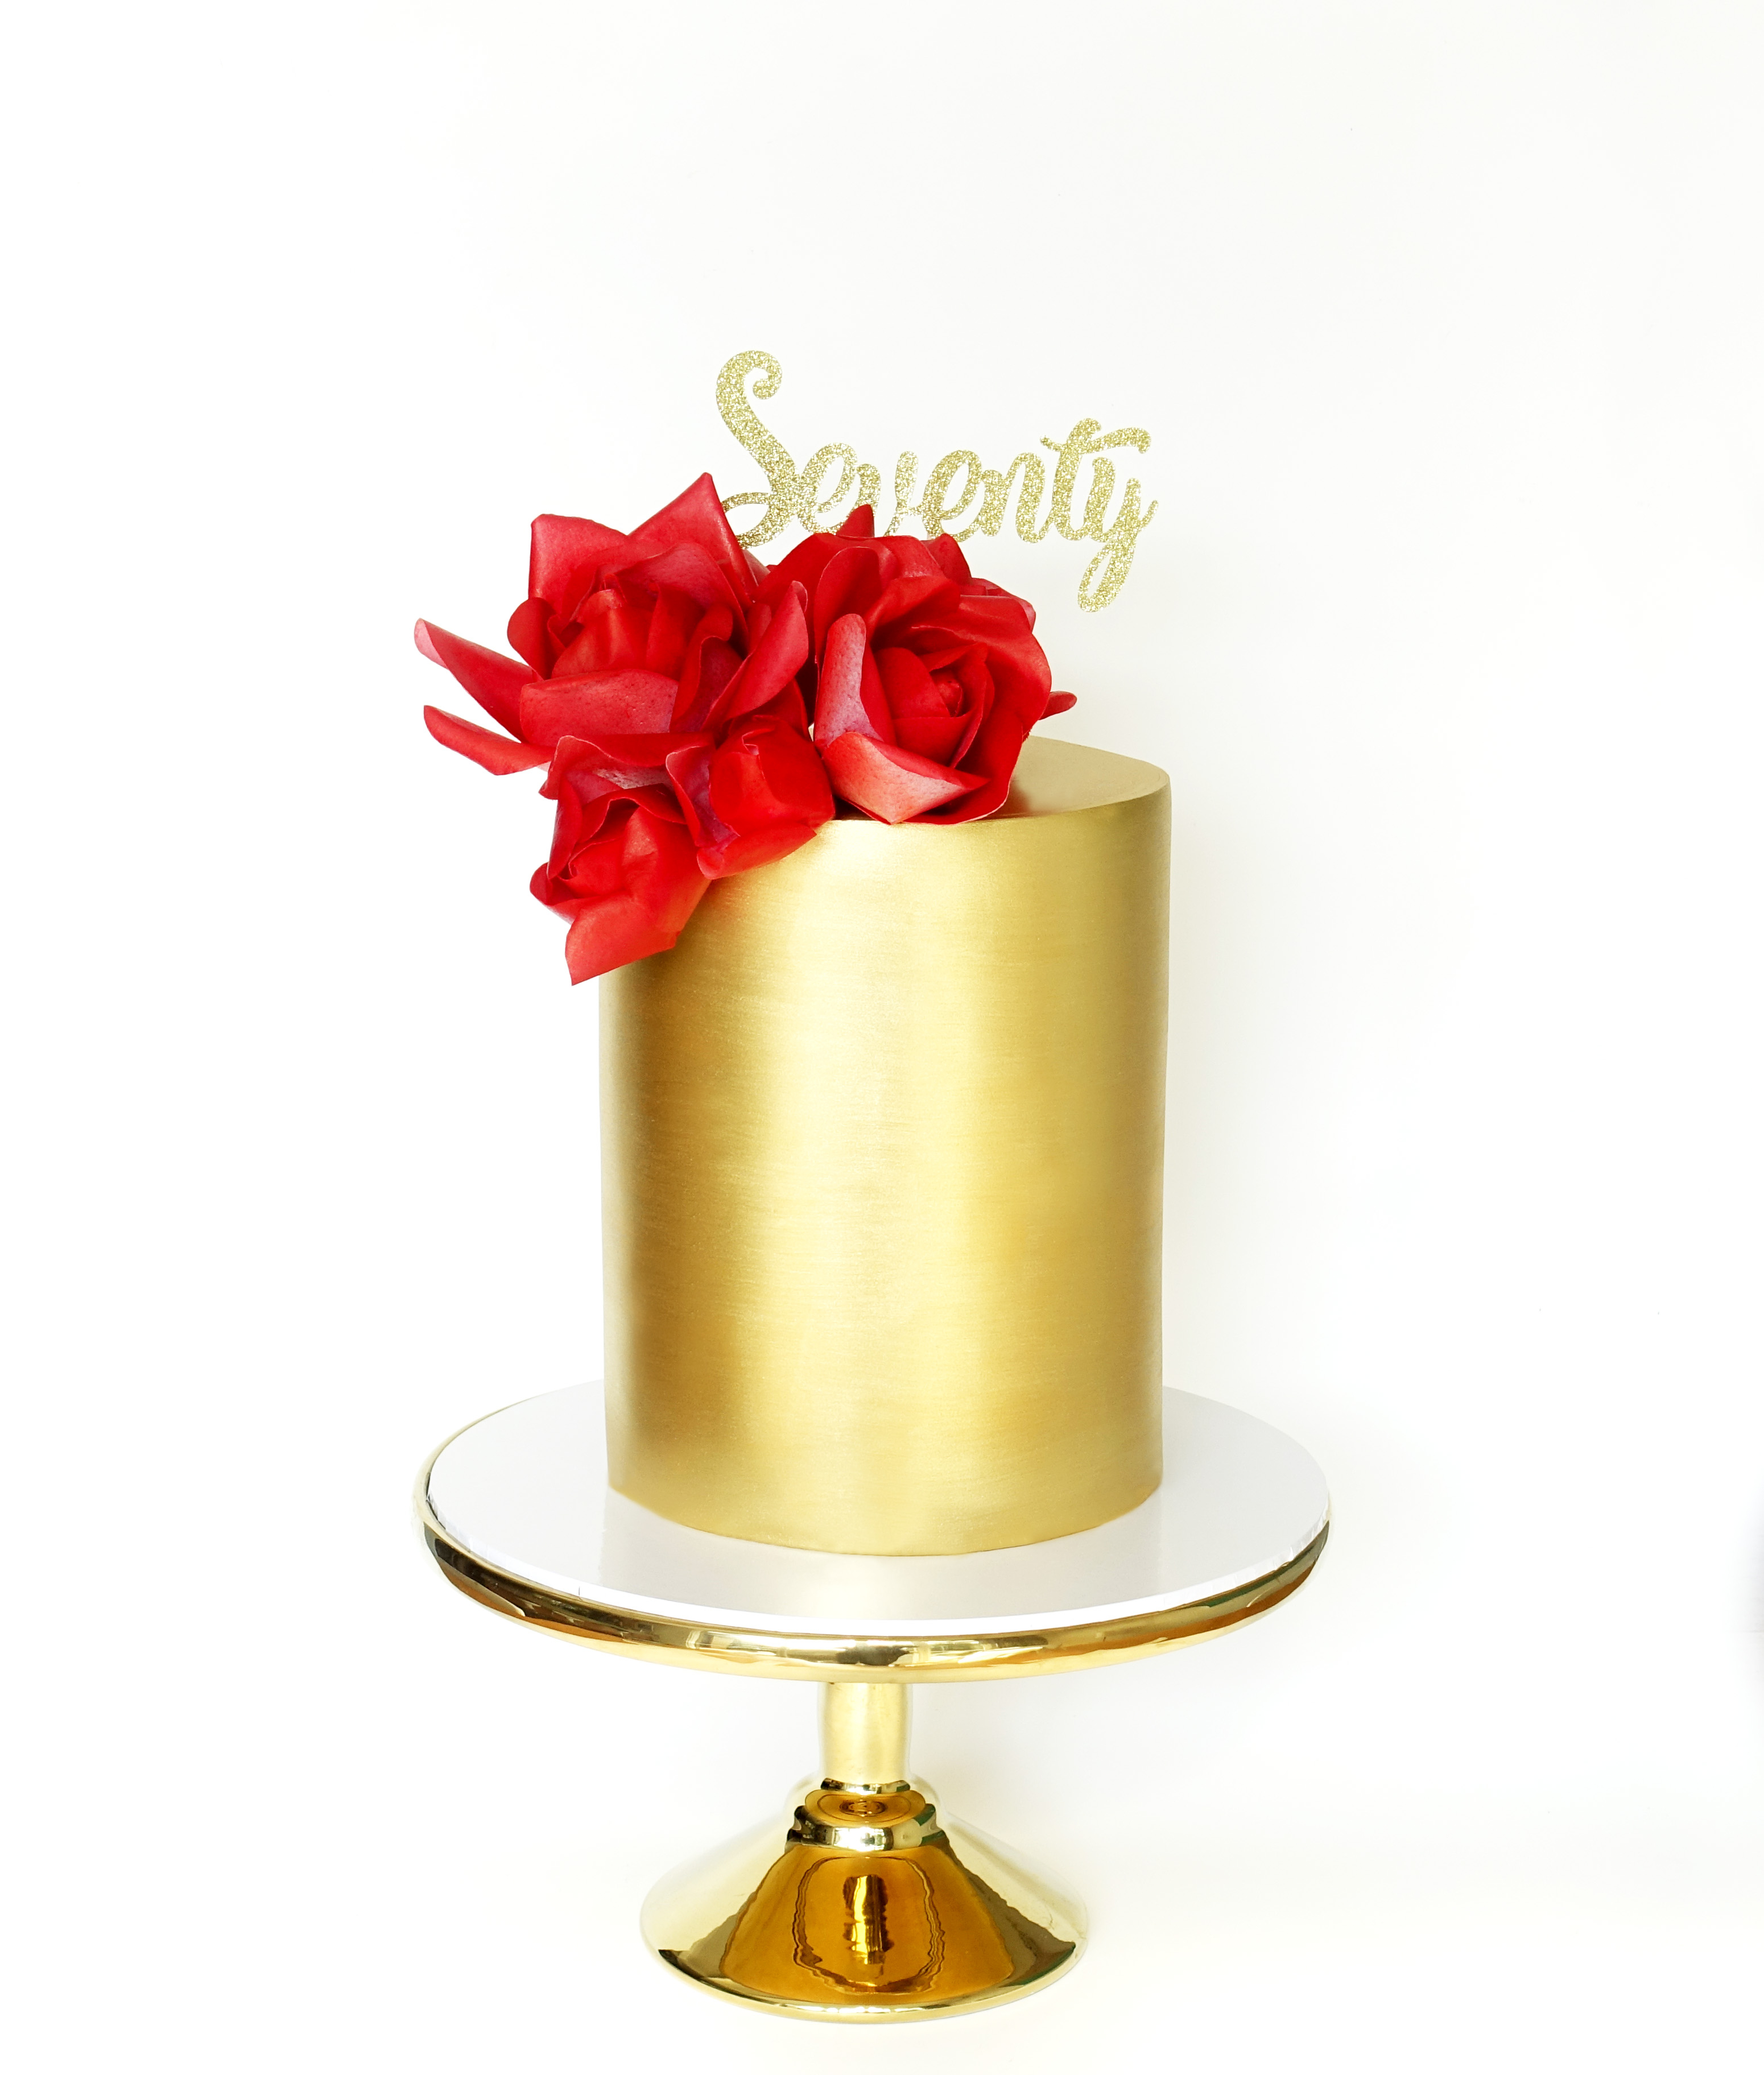 White And Gold Birthday Cake Gold Birthday Cake Modern Design Painted Cake Wafer Paper Flowers